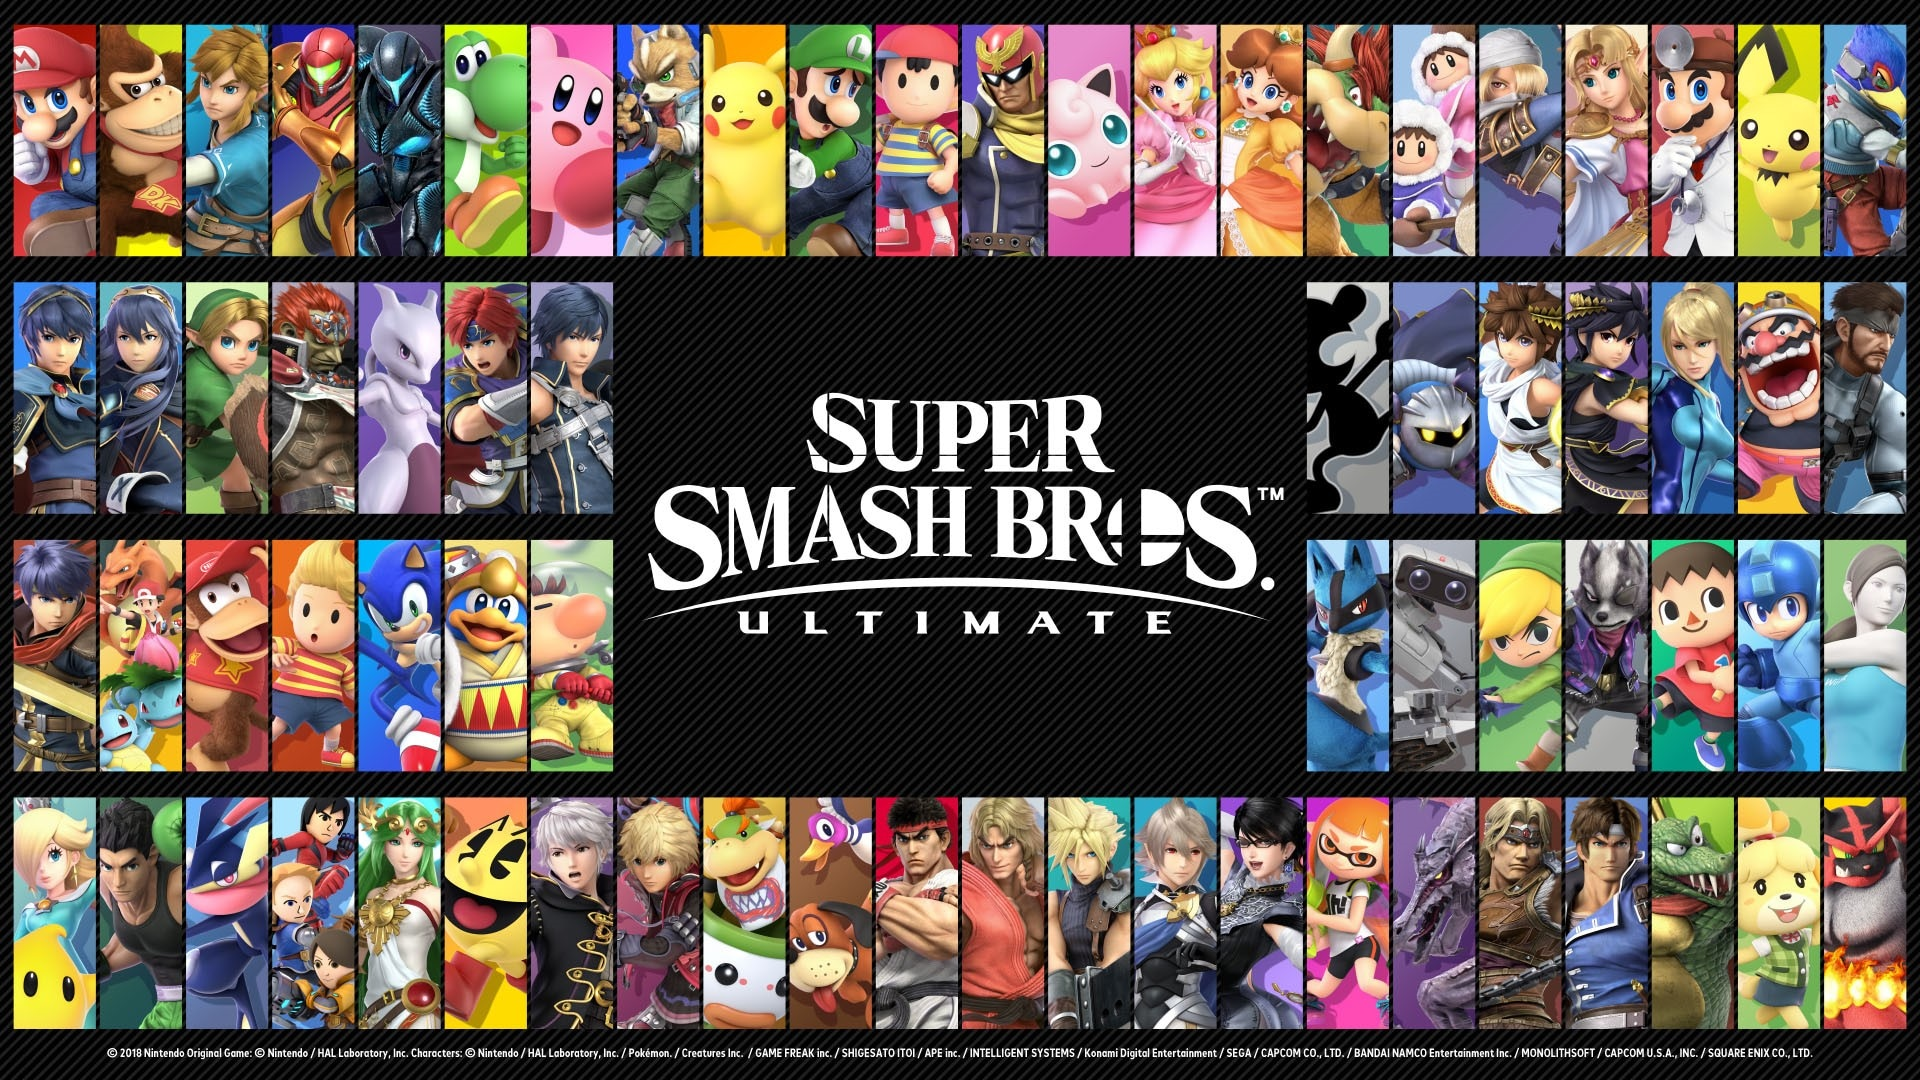 Super Smash Bros  Ultimate for the Nintendo Switch system